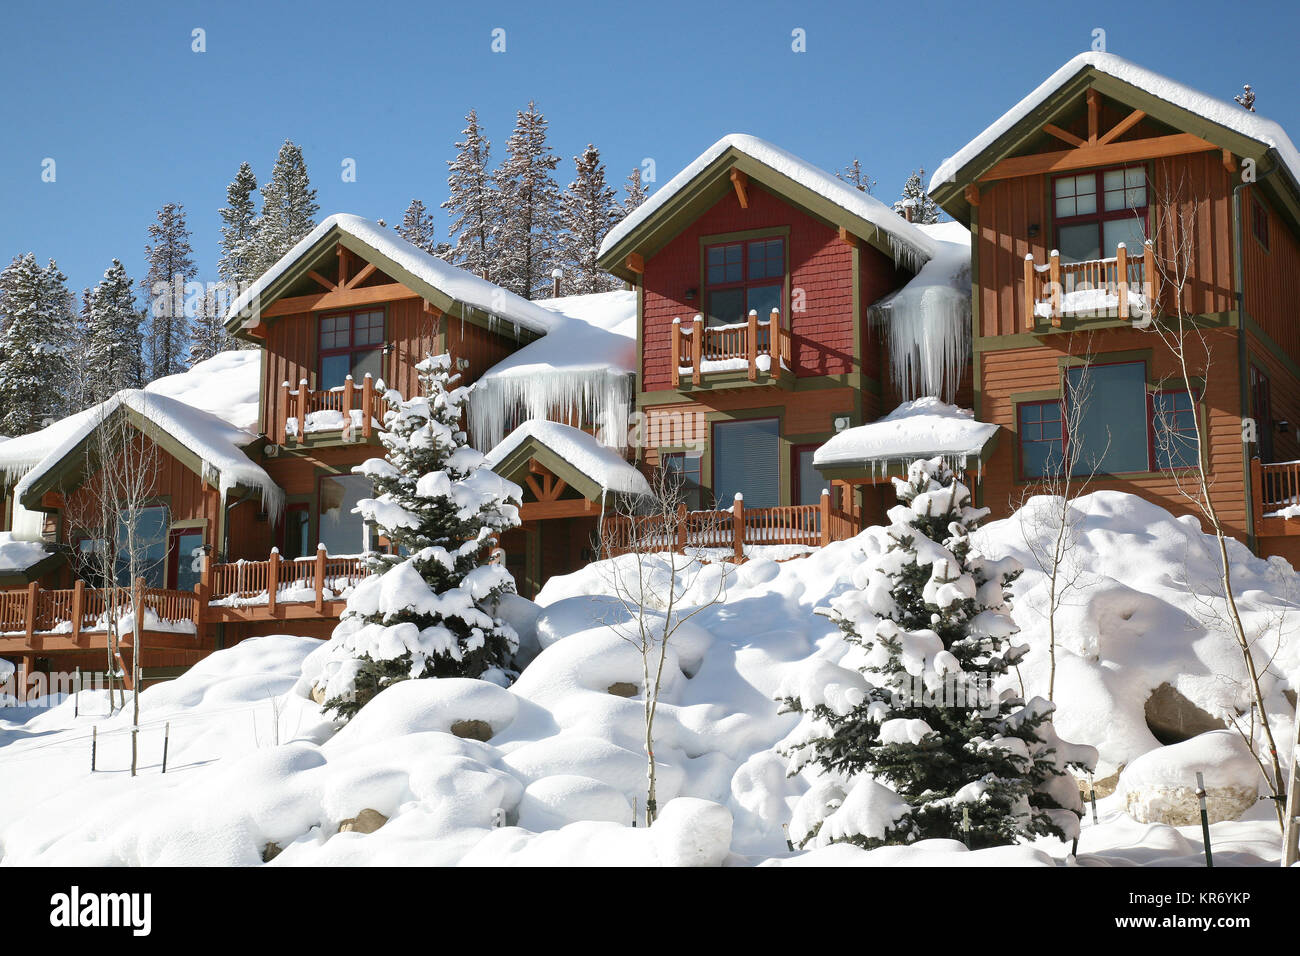 Rental cabins stock photos rental cabins stock images for Cabin rentals in winter park co